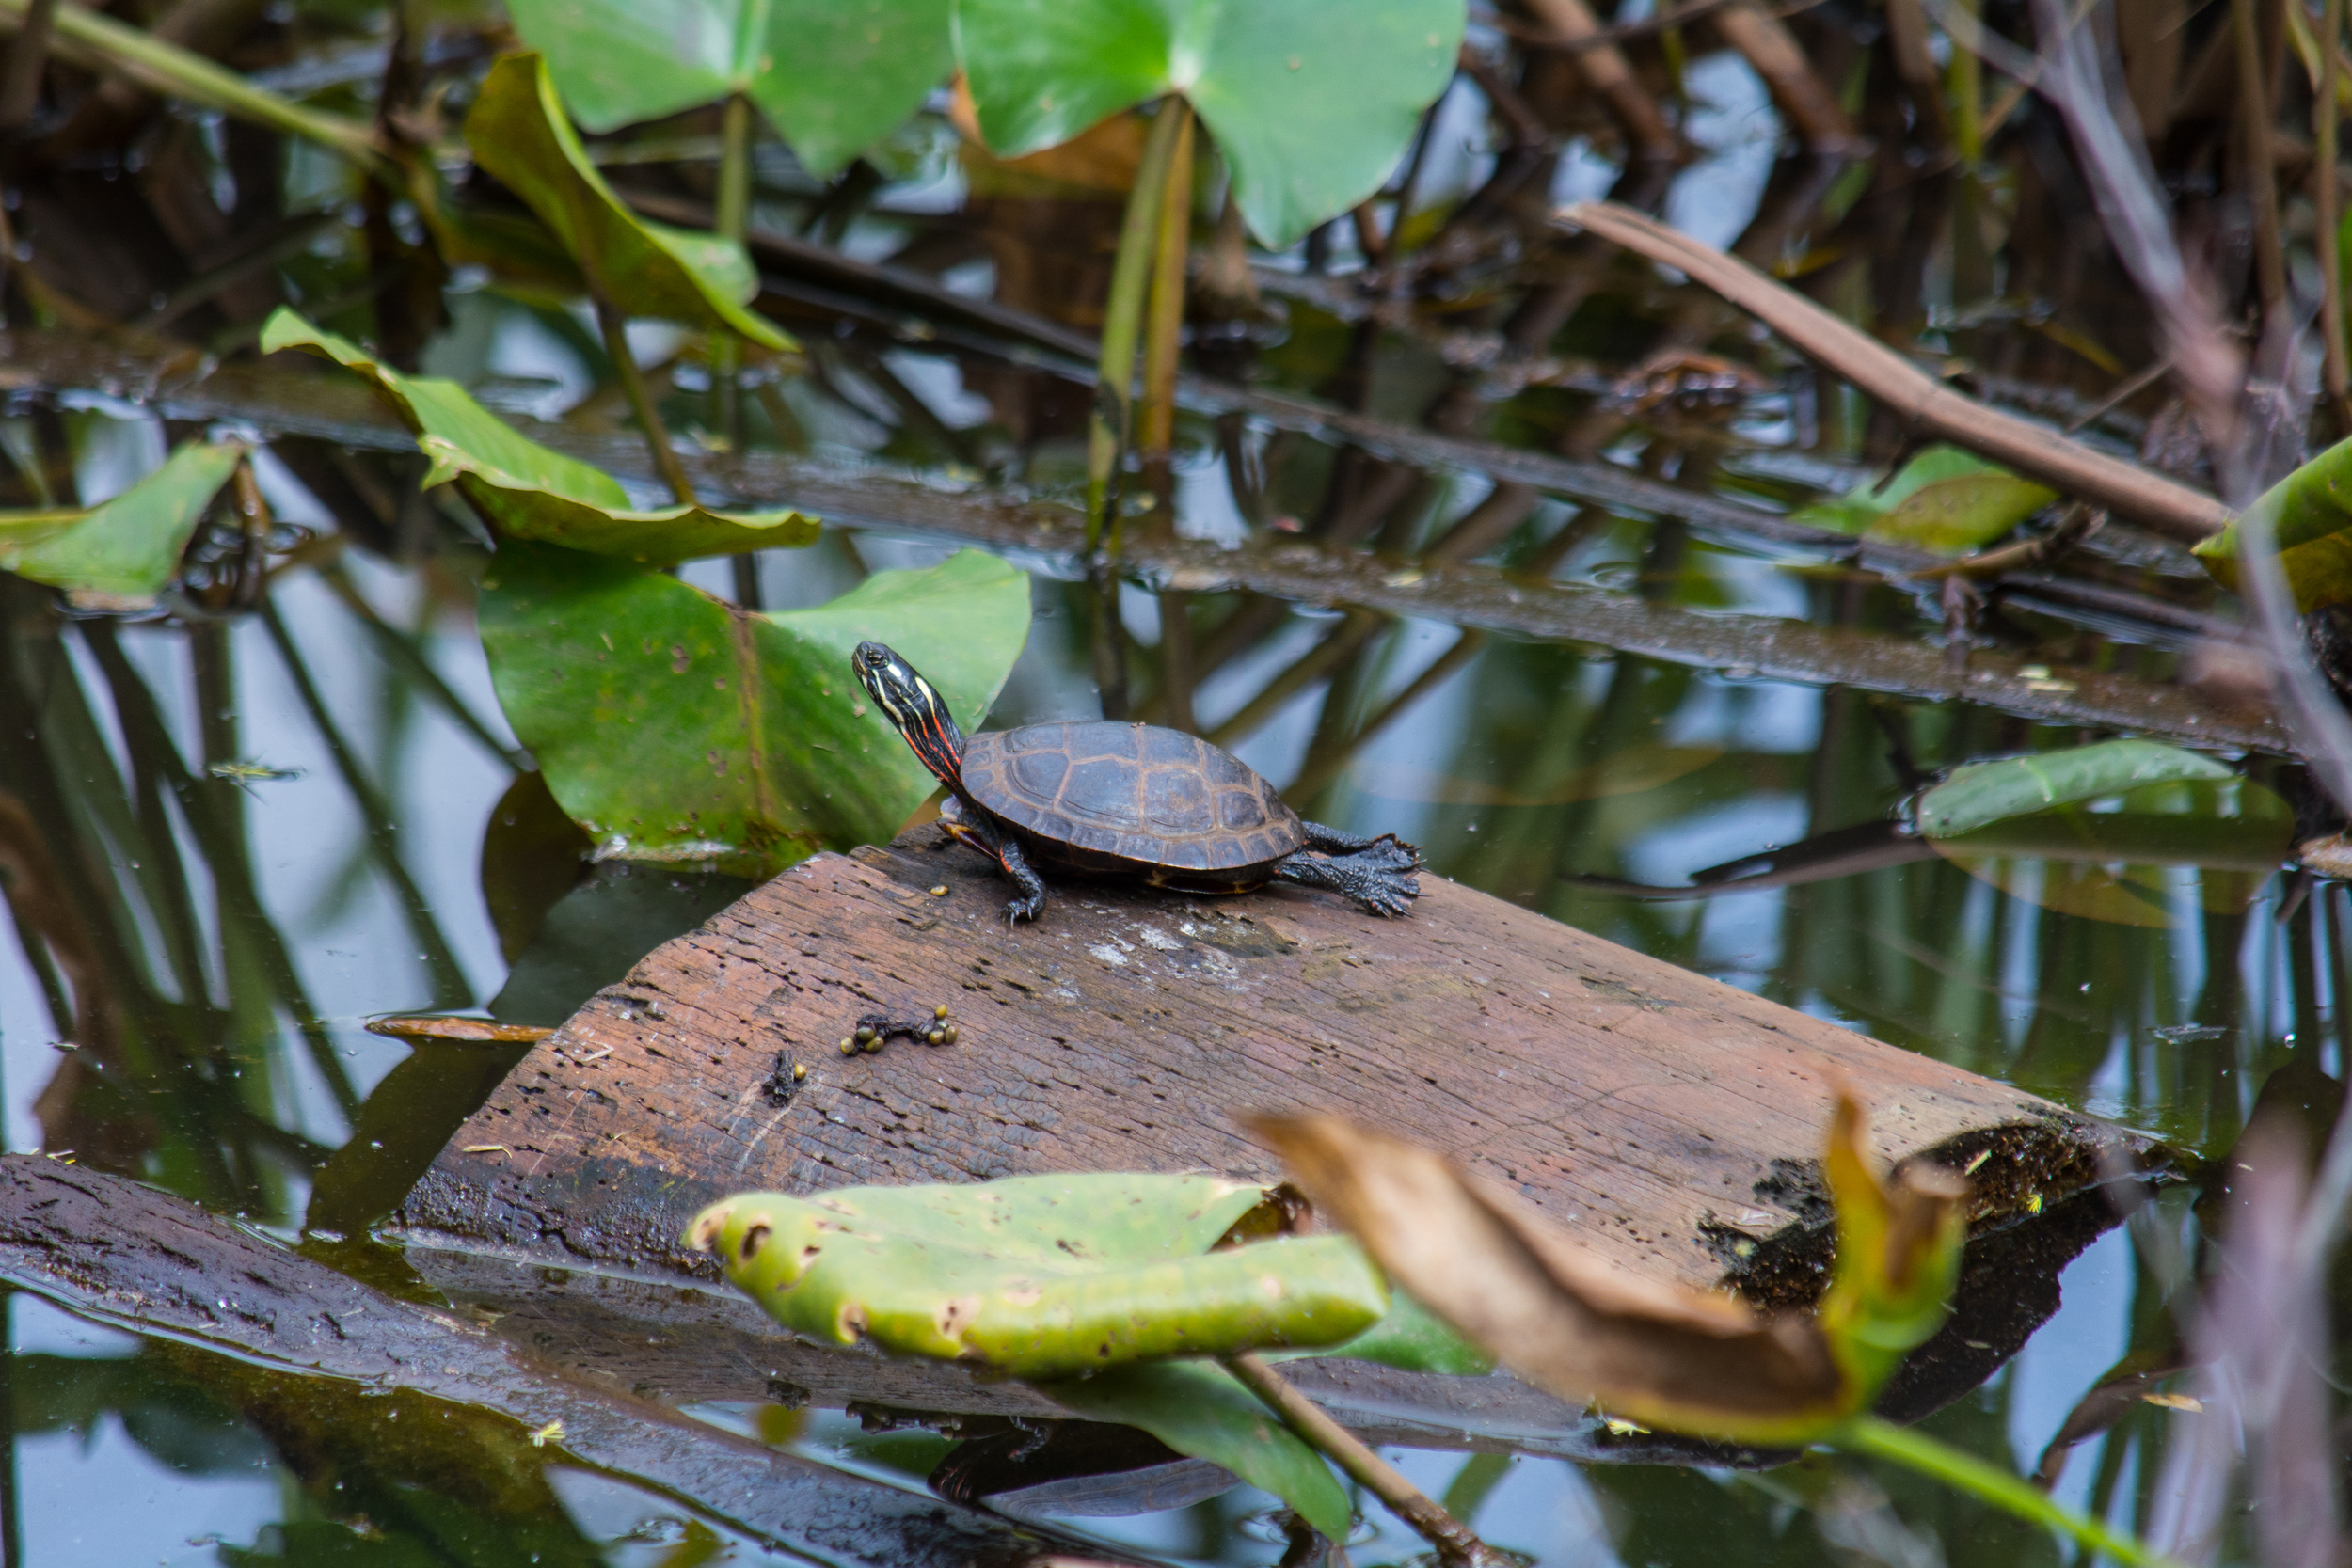 Cute Turtle on log